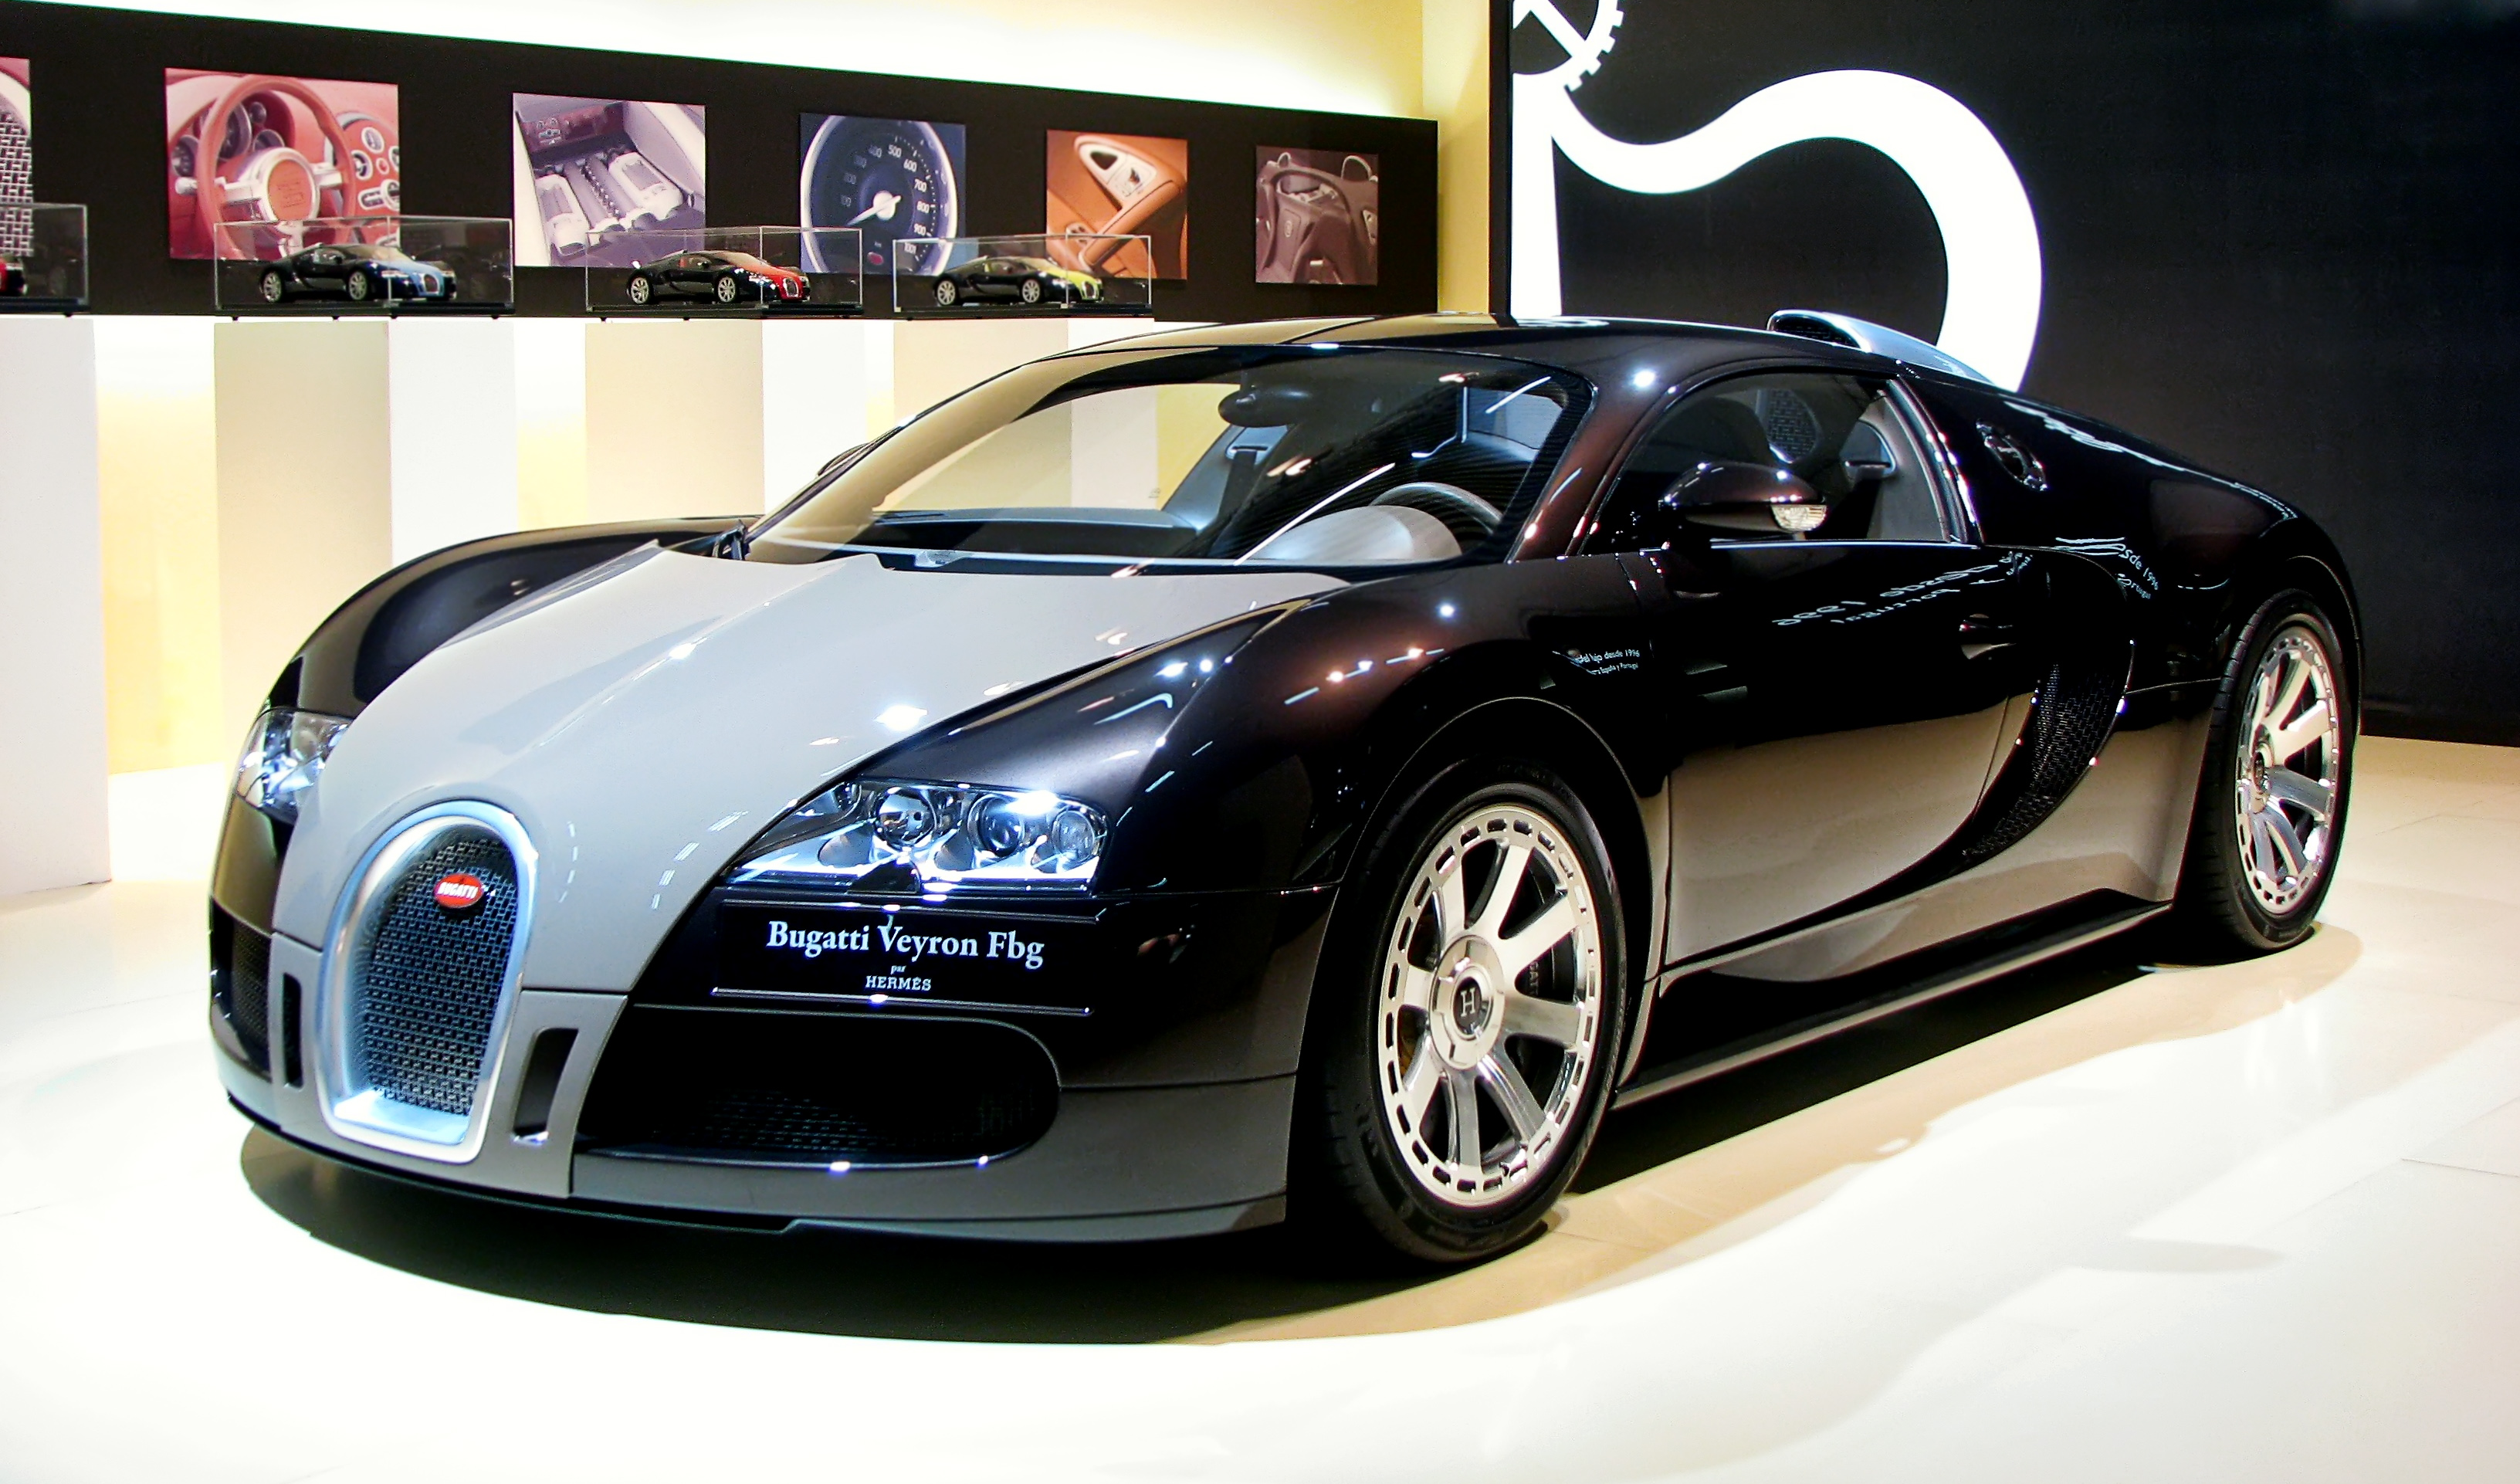 file bugatti veyron bcn motorshow 2009 jpg wikimedia commons. Black Bedroom Furniture Sets. Home Design Ideas